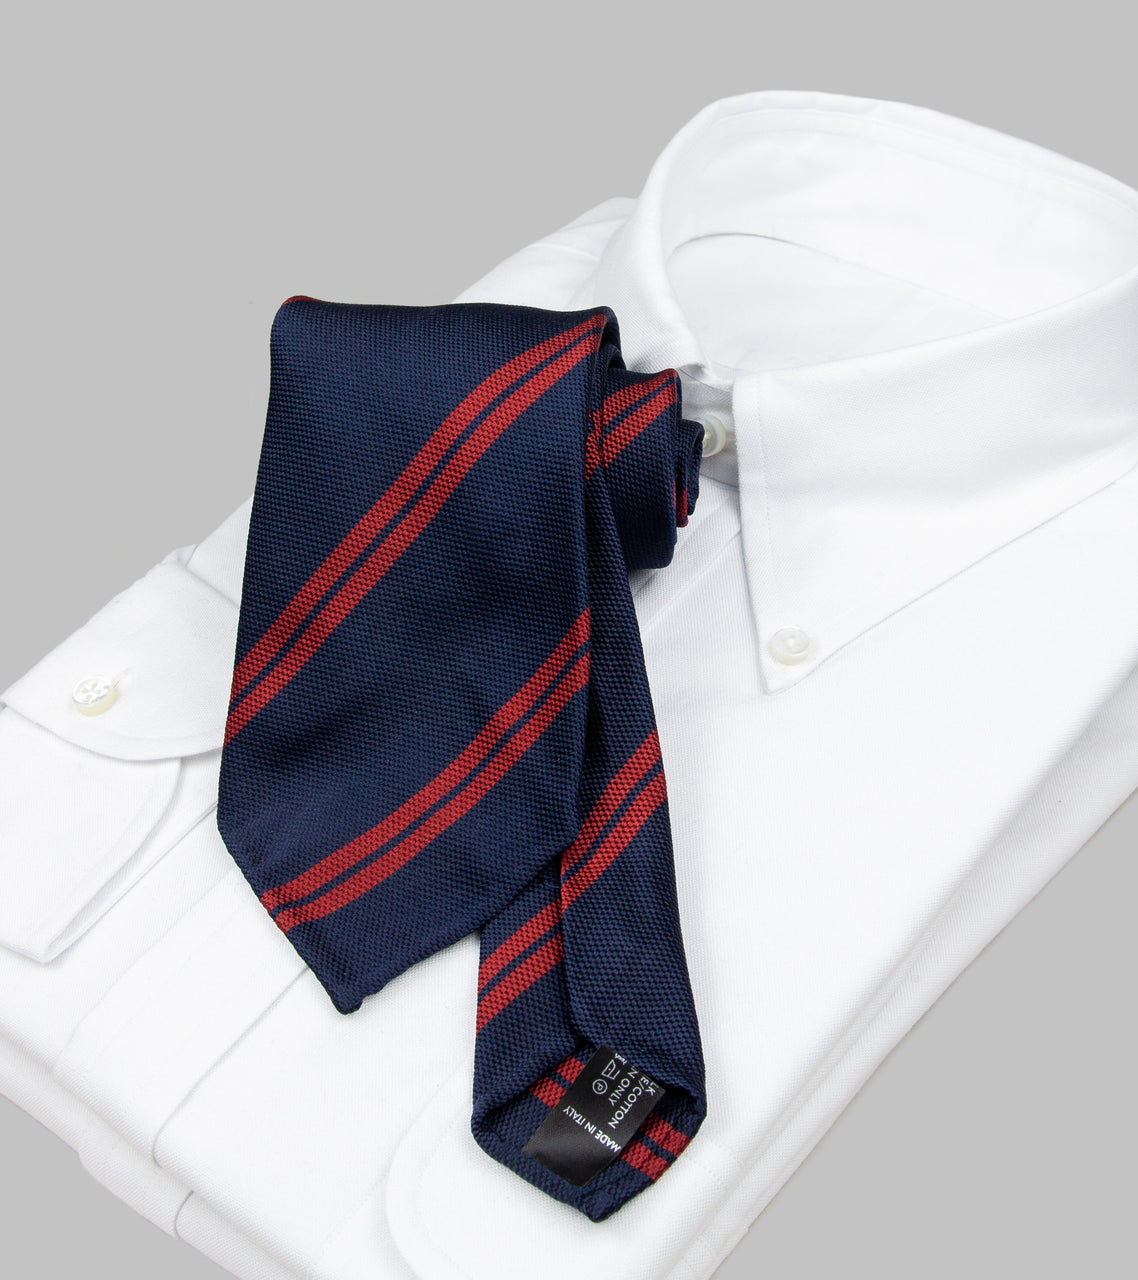 Bryceland's Silk Cotton Tie 60402